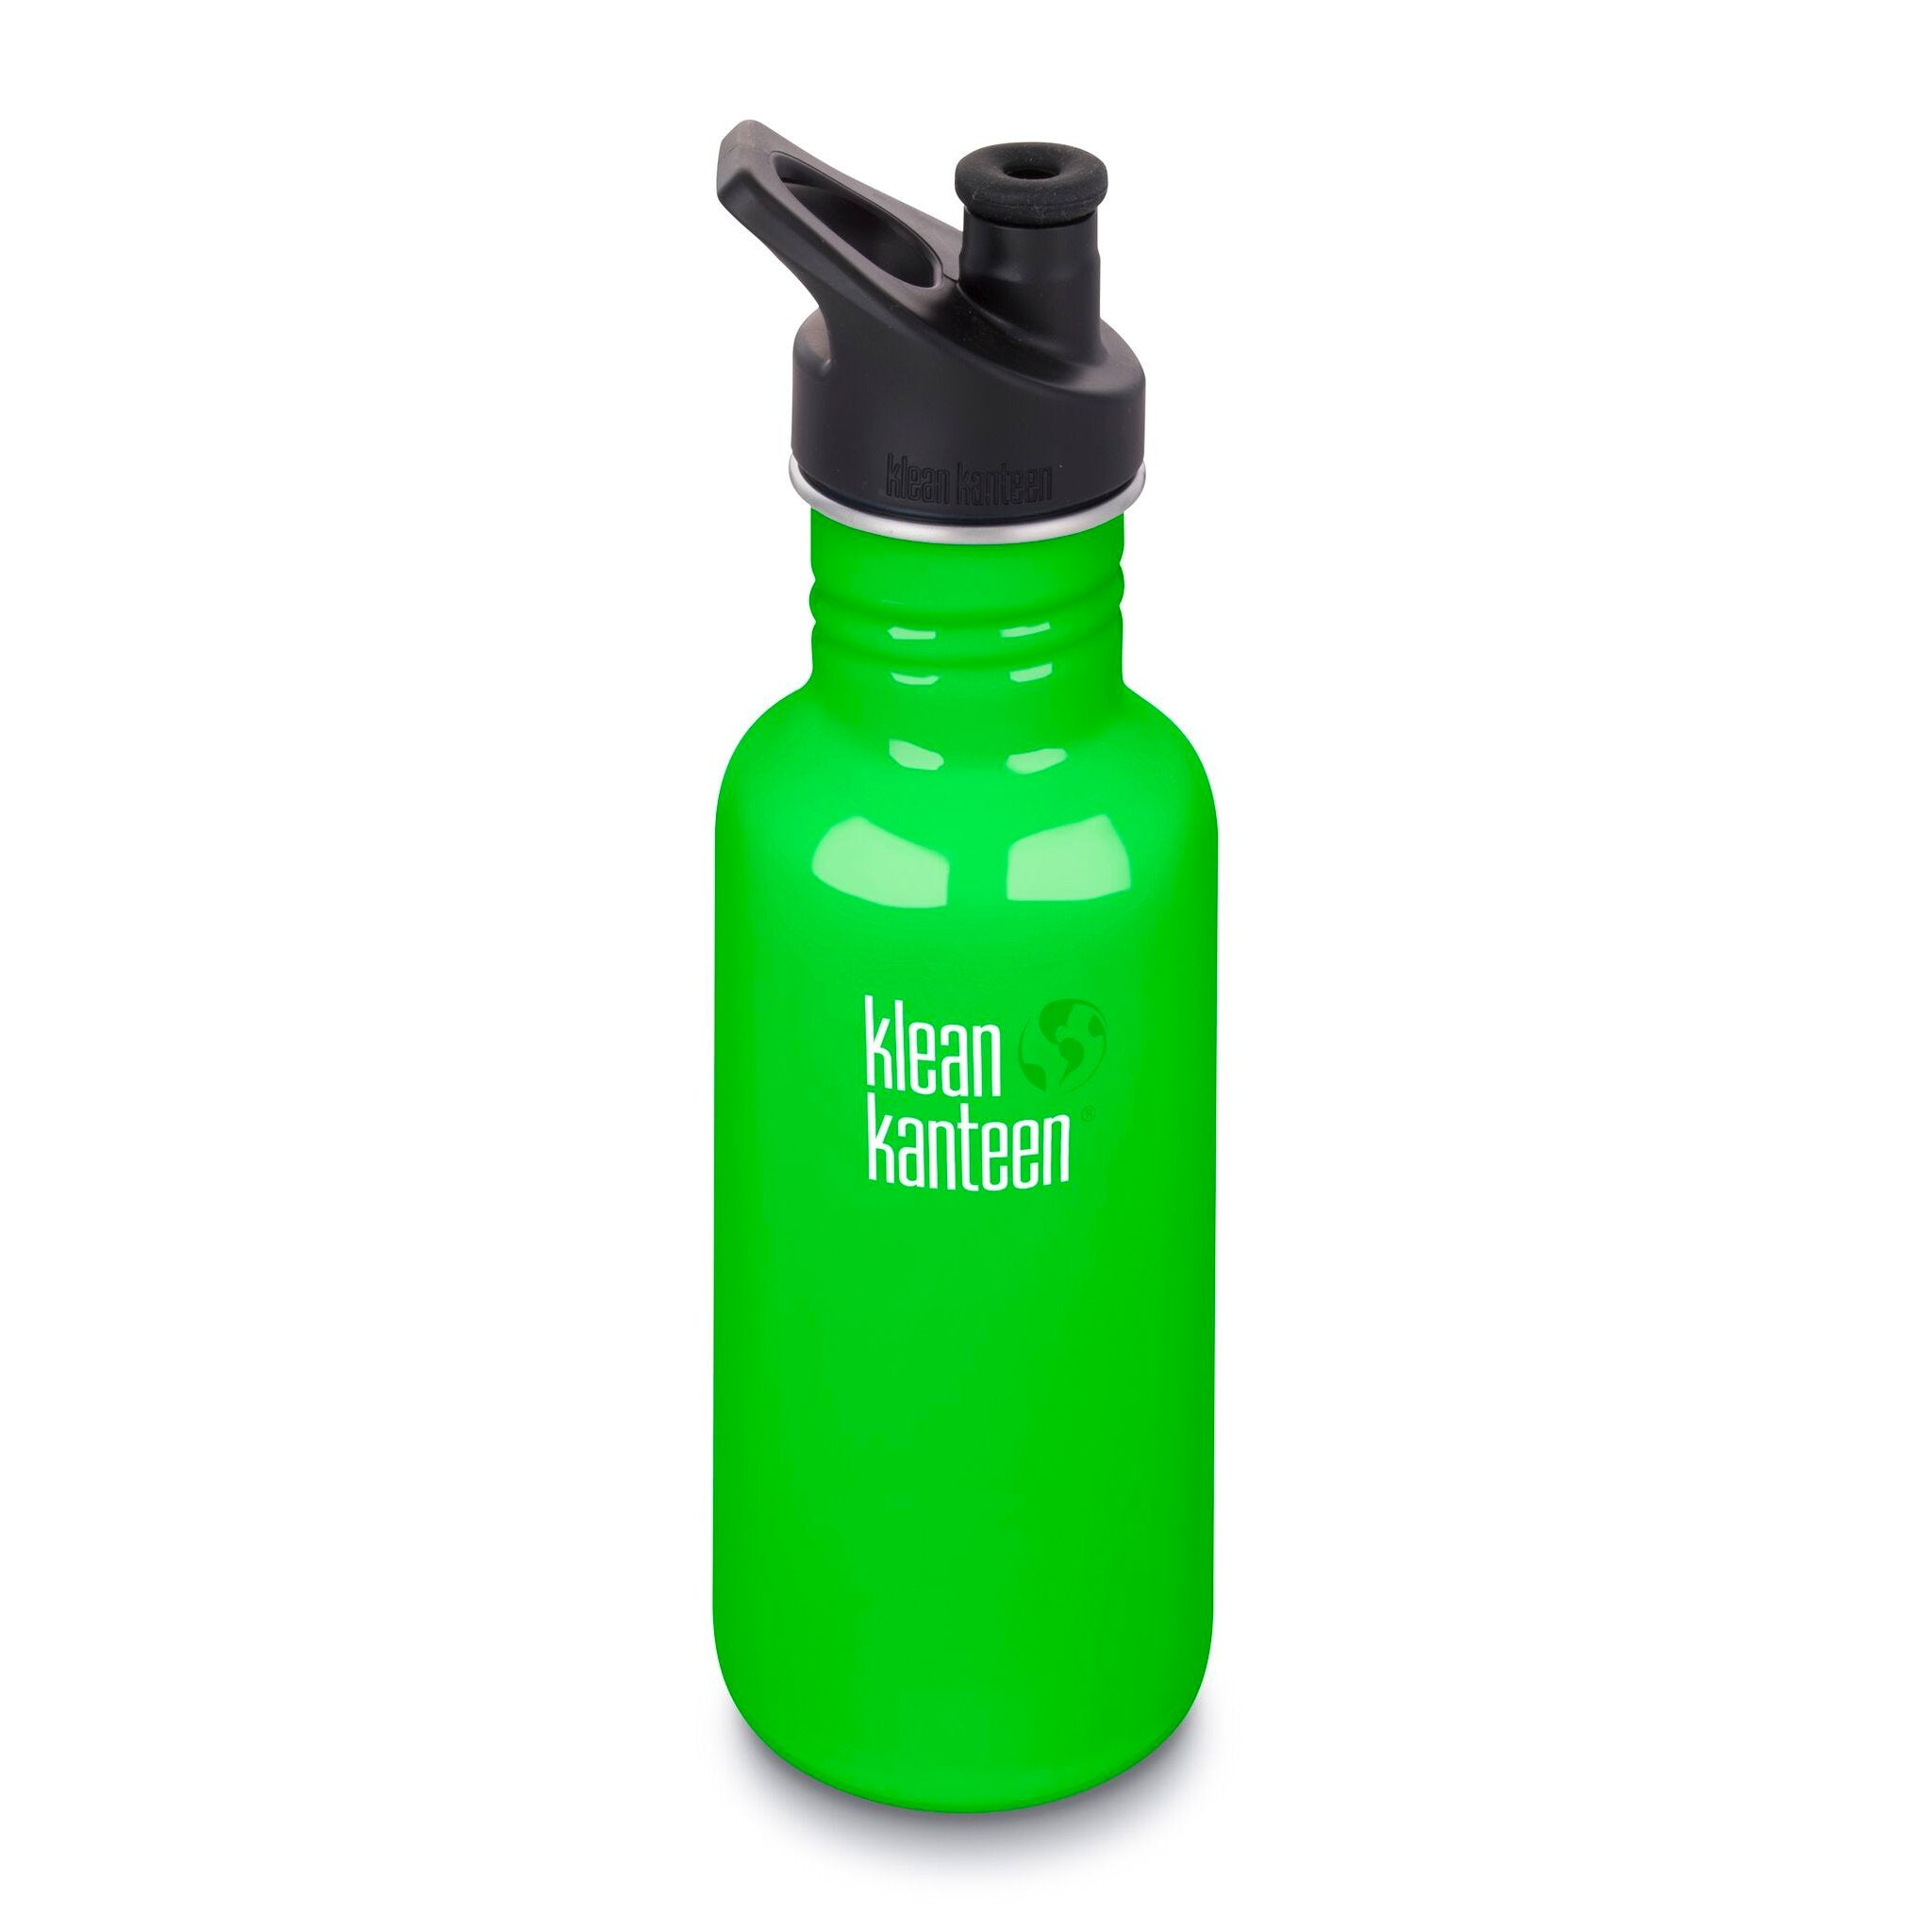 Klean Kanteen Stainless Steel Classic Water Bottle Klean Kanteen Water Bottles 532ml 18oz / Spring Green at Little Earth Nest Eco Shop